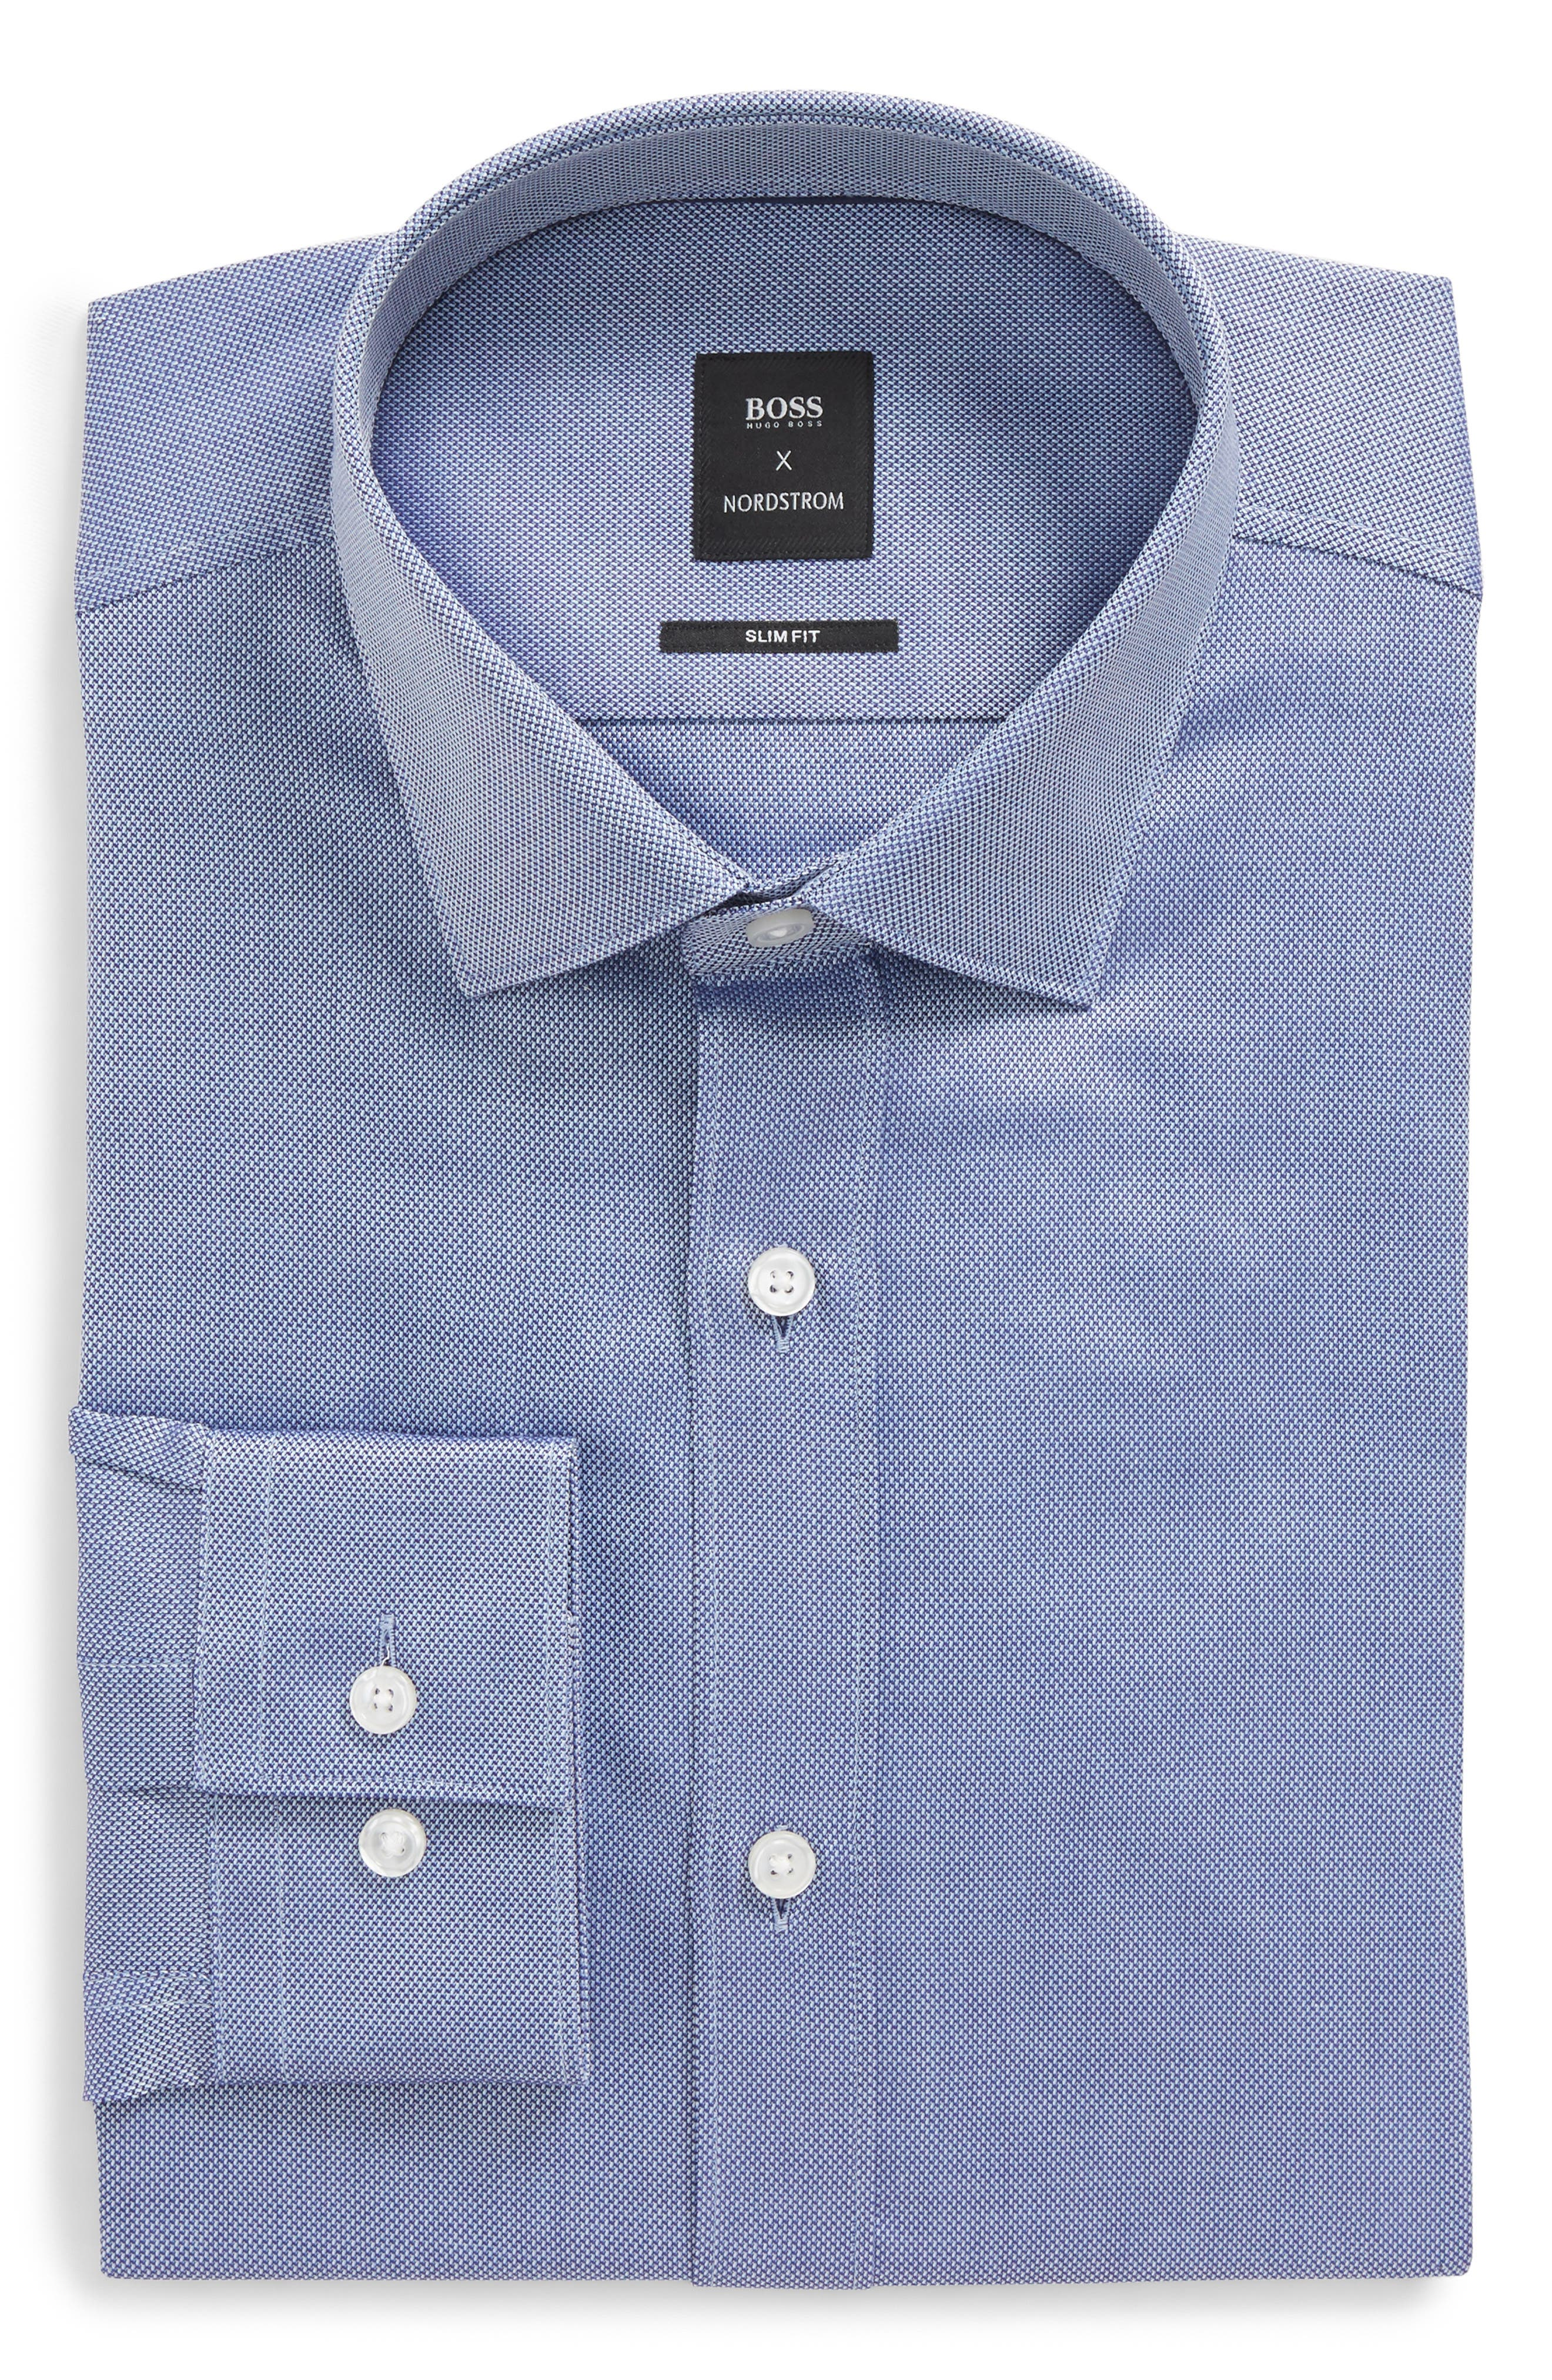 Nordstrom x BOSS Isaak Slim Fit Solid Dress Shirt,                         Main,                         color, Blue